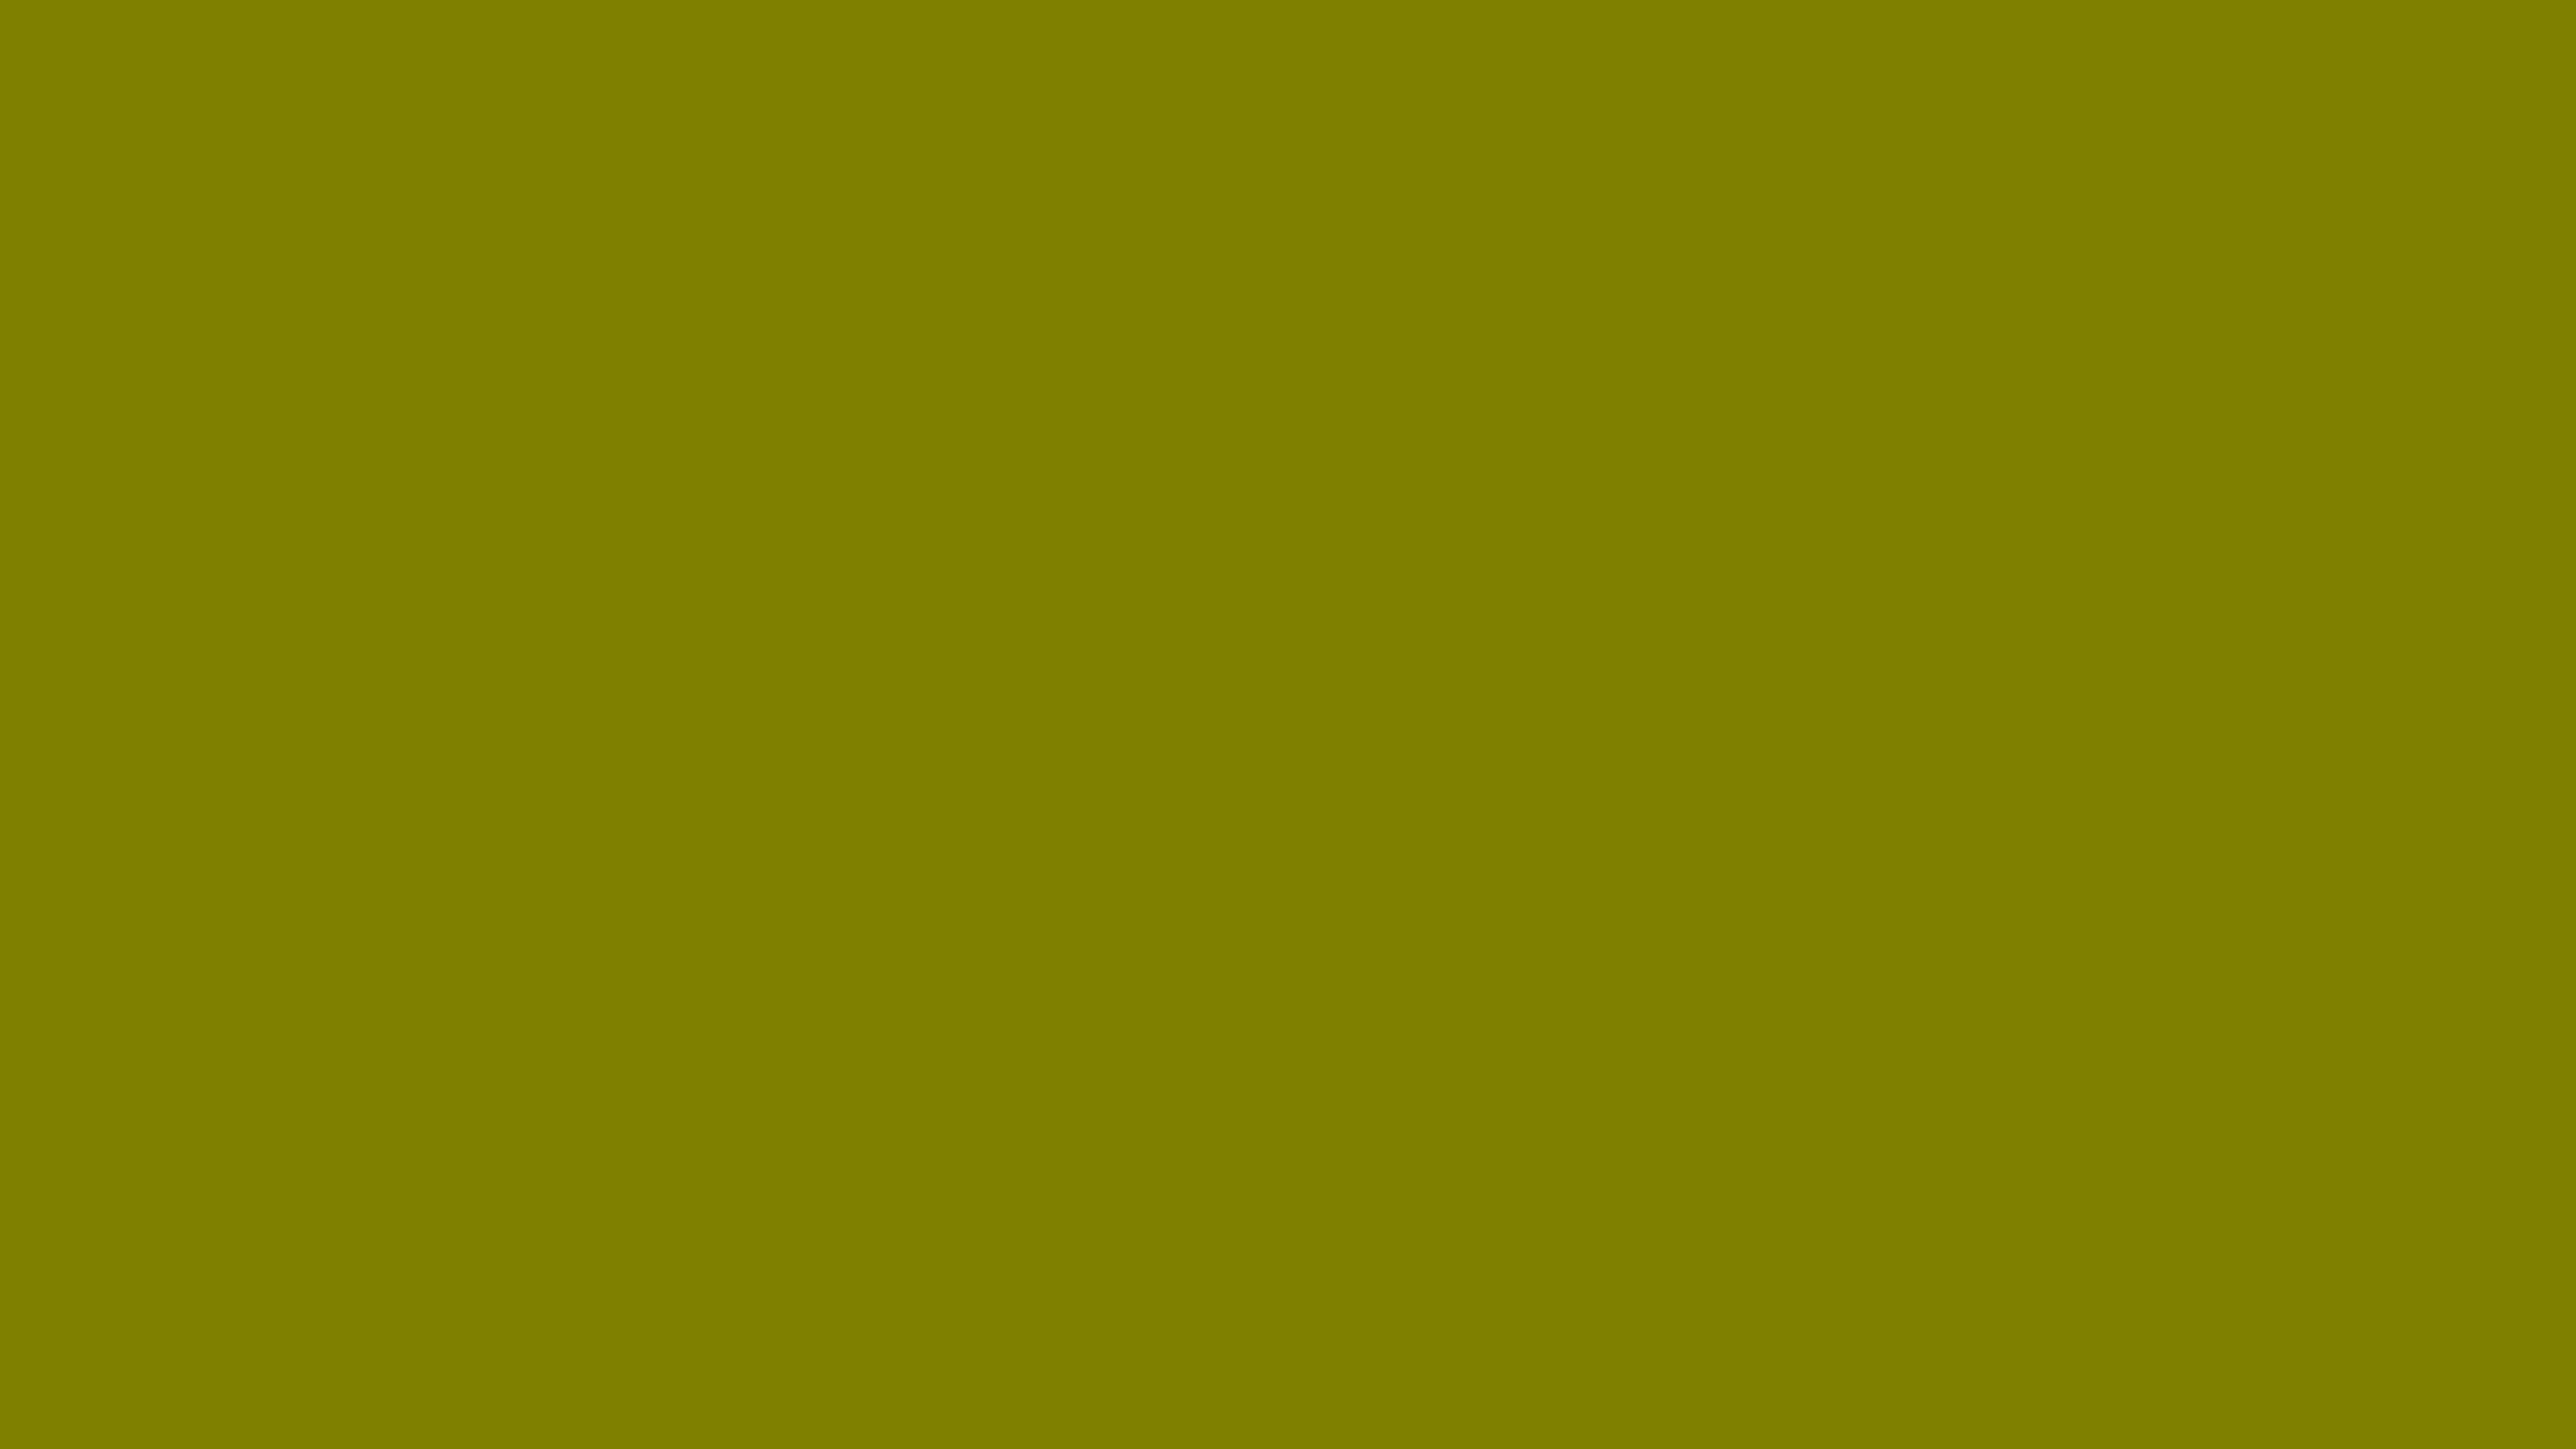 3840x2160 Heart Gold Solid Color Background